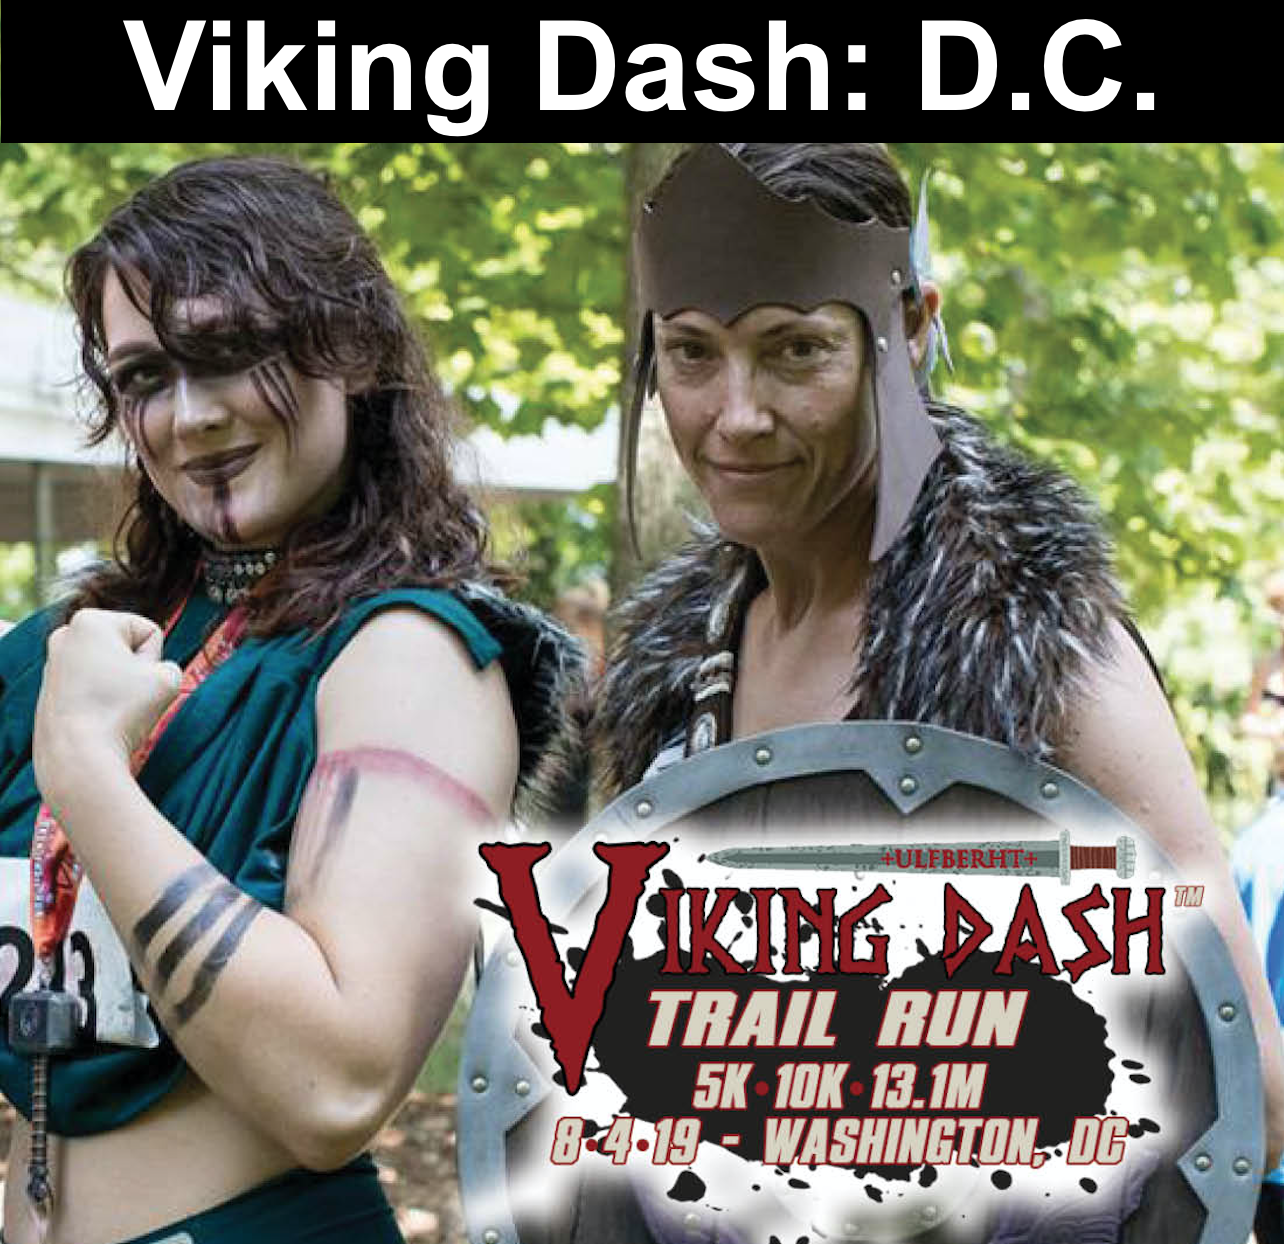 2019 Viking Dash Trail Run: D.C.